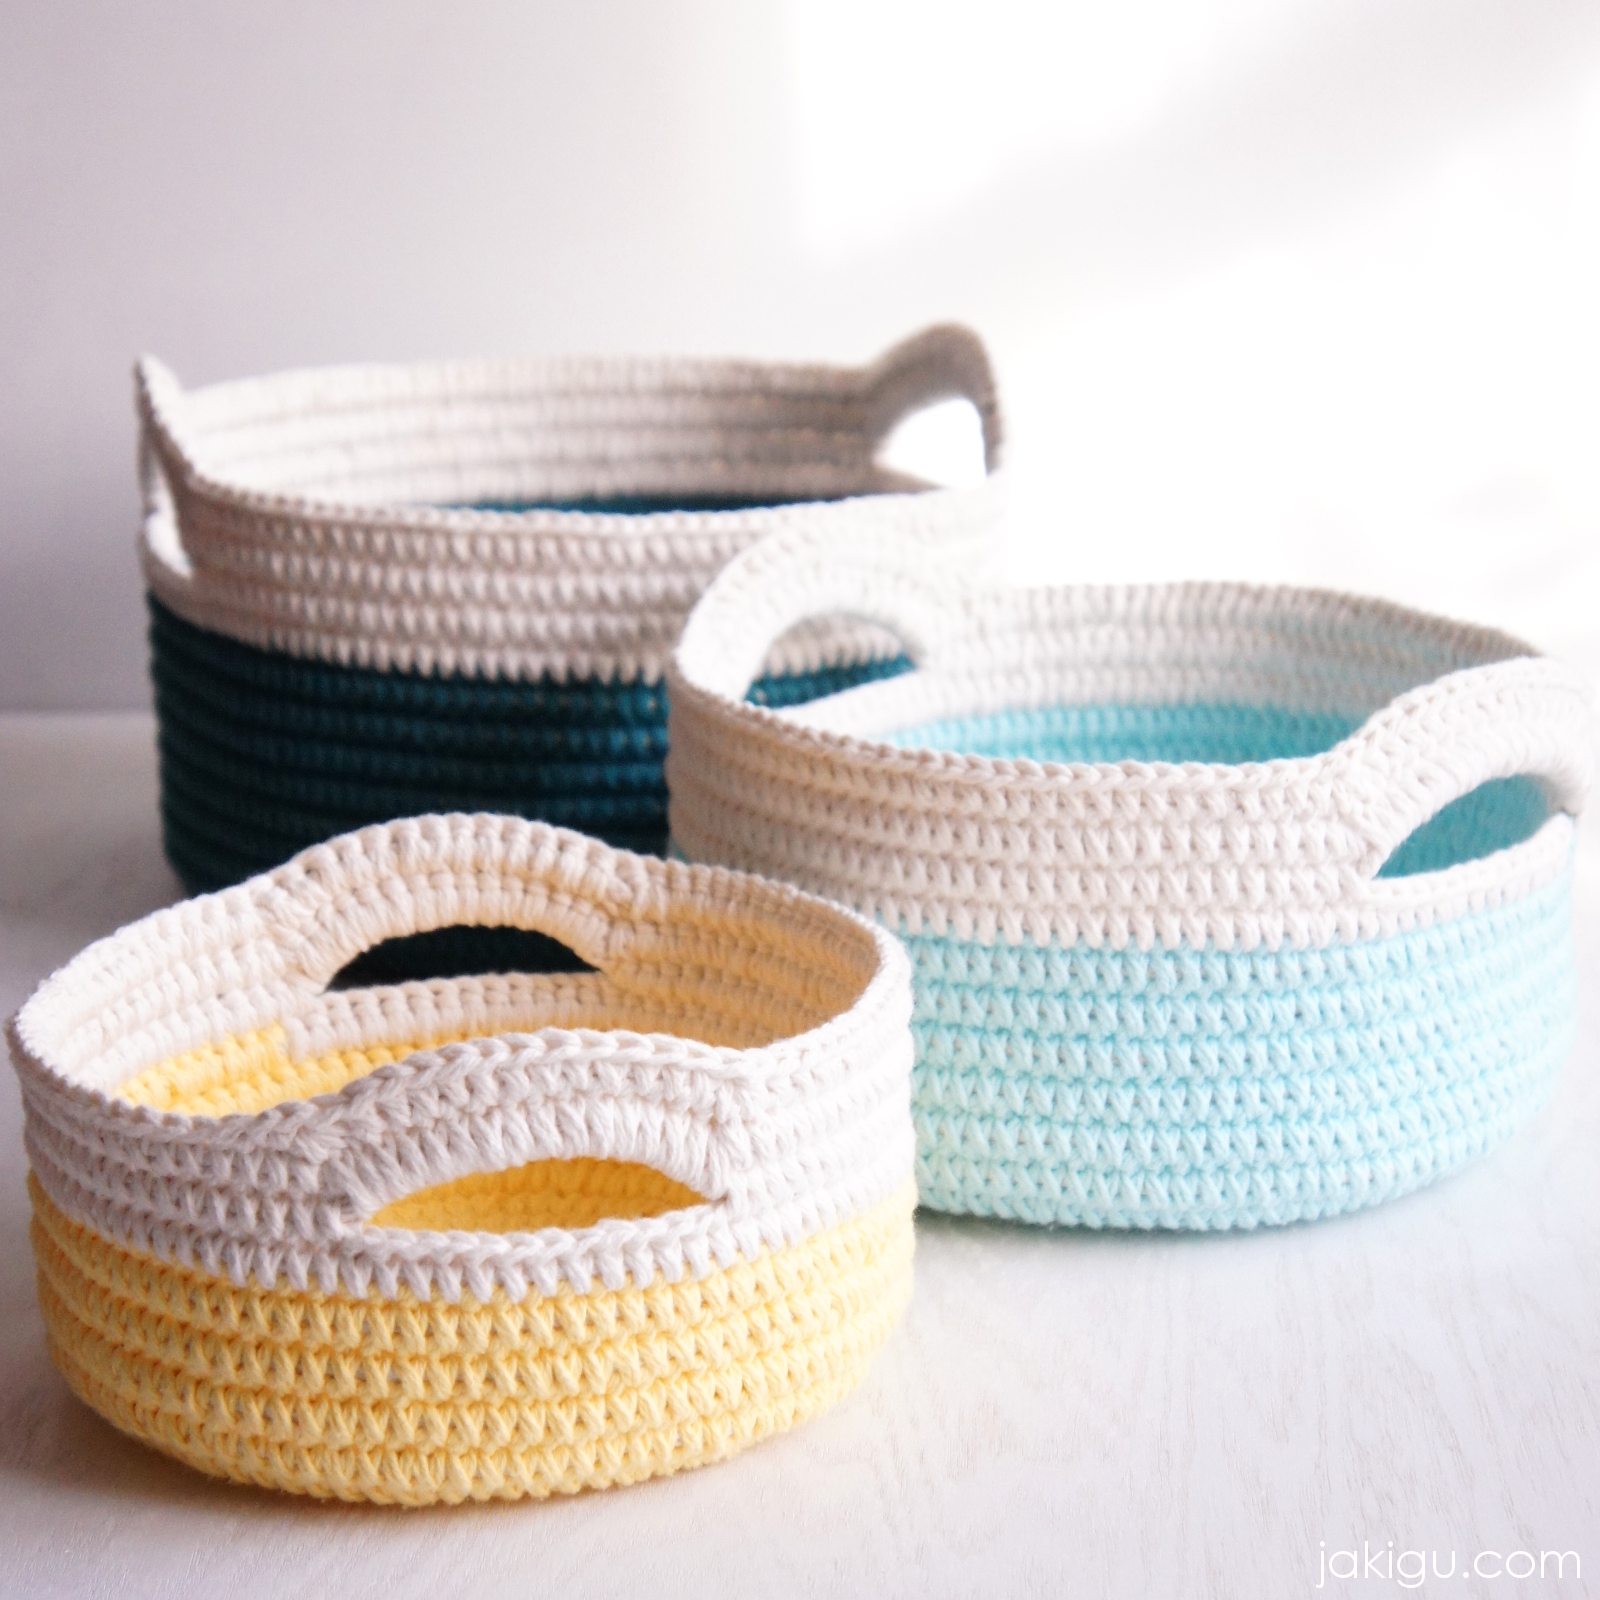 Crochet Basket With Handles Pattern Awesome Inspiration Ideas